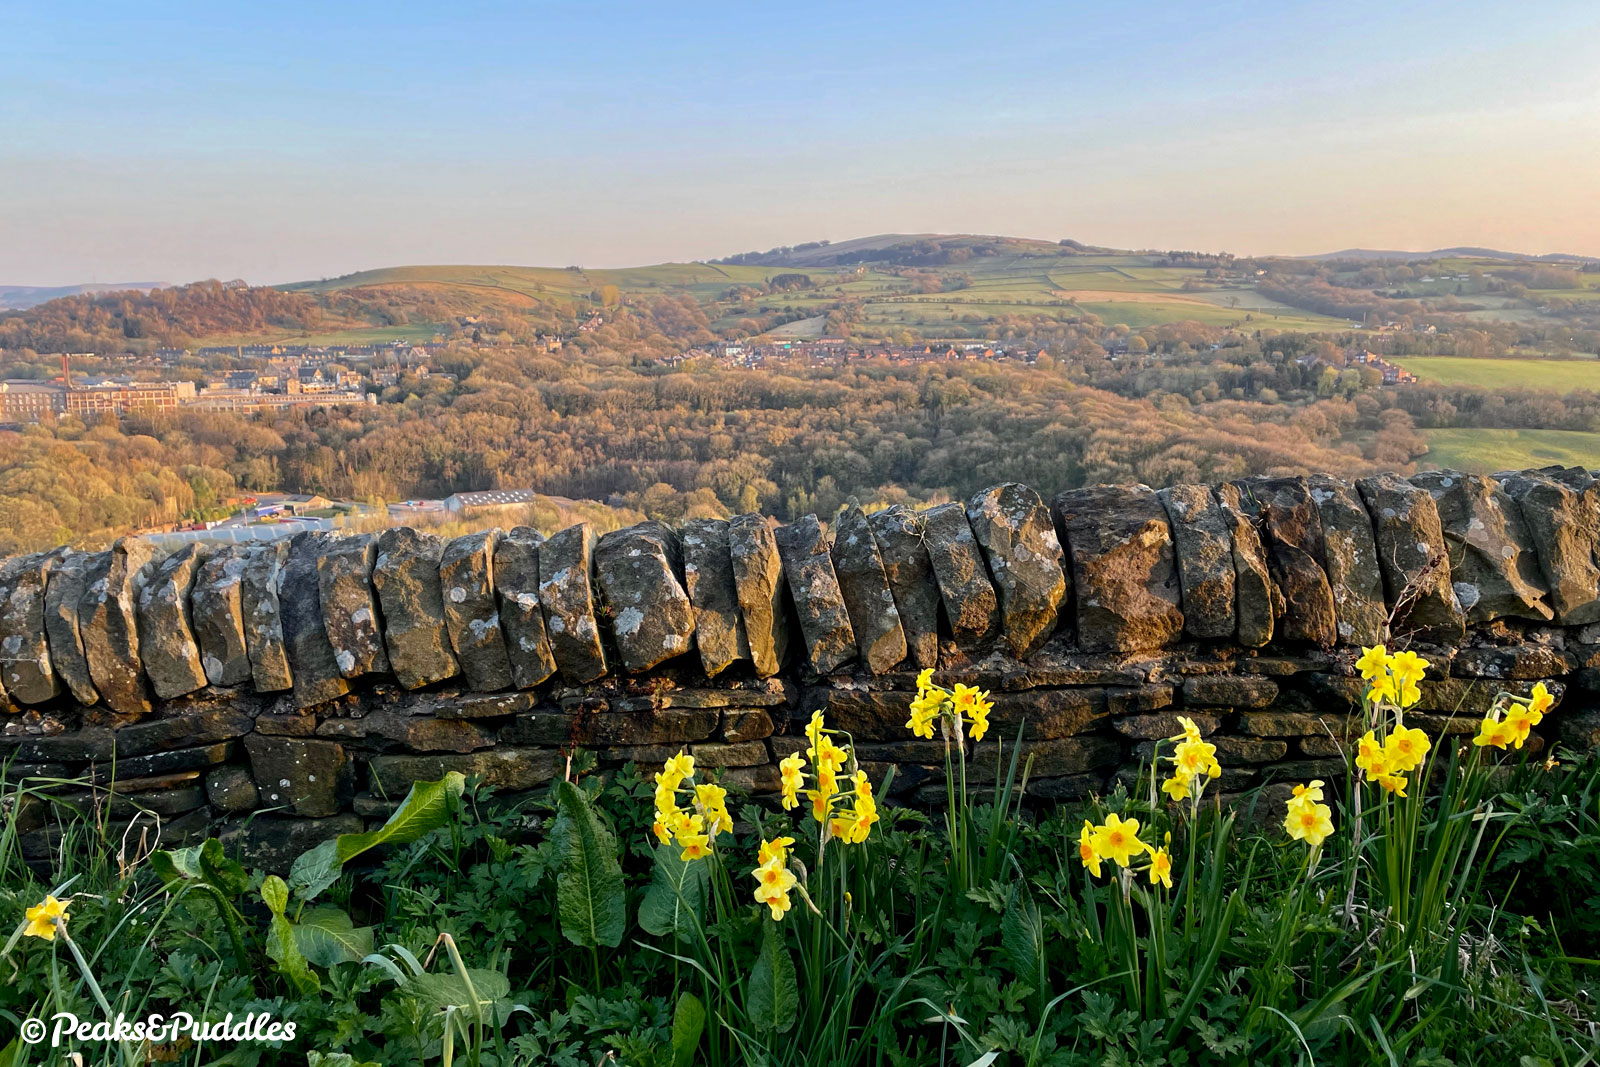 Spring narcissus with gentle evening sunlight across the valley. The Swizzels Matlow sweet factory is to the left.